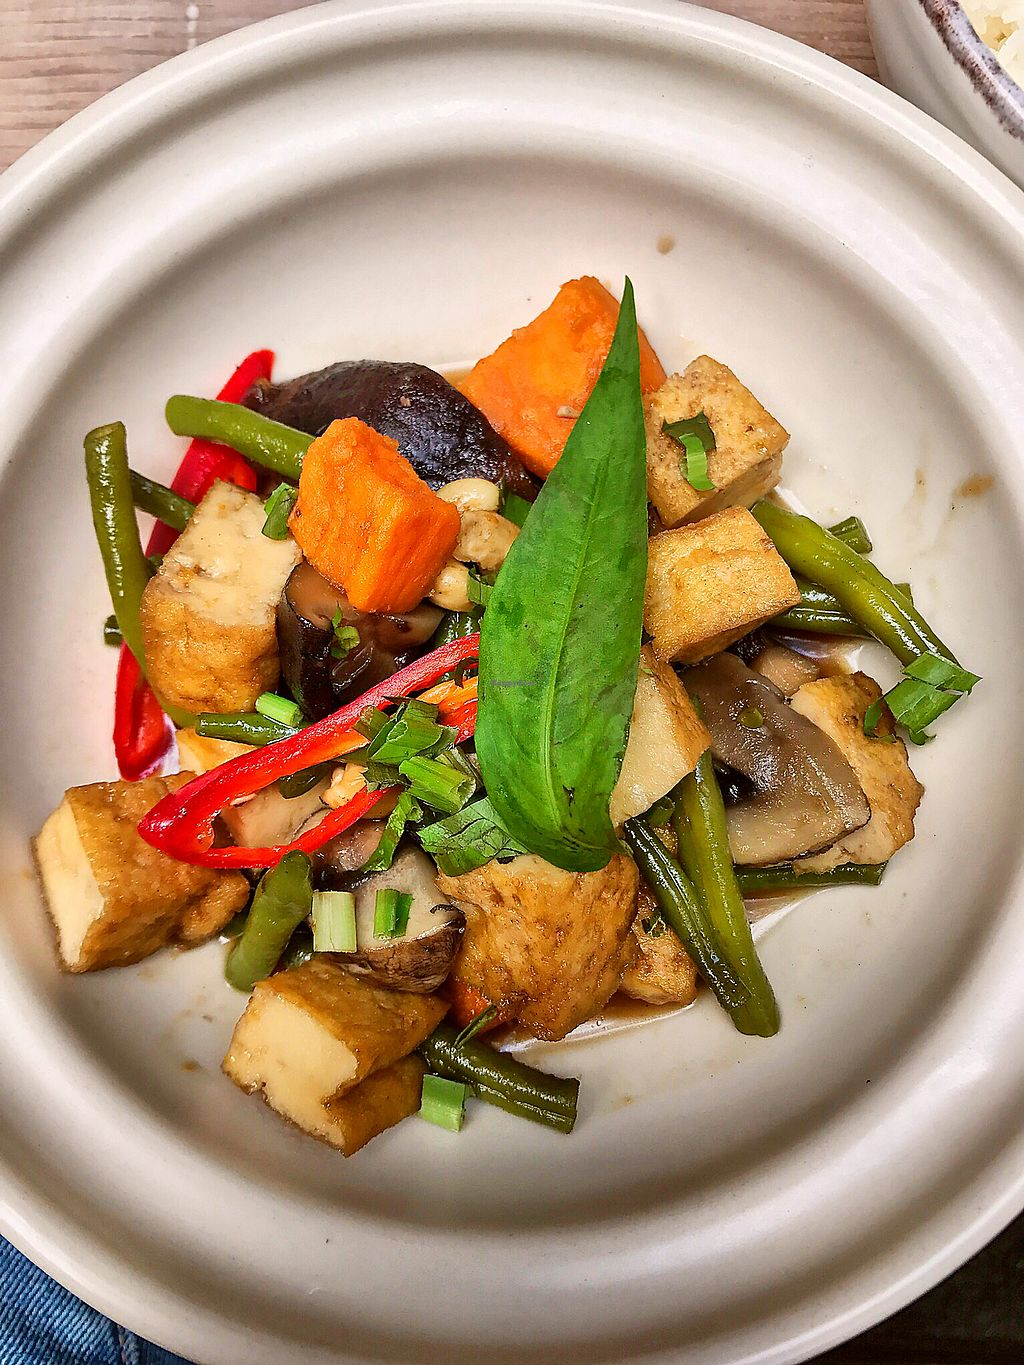 """Photo of Chum Chay  by <a href=""""/members/profile/Alexxx66"""">Alexxx66</a> <br/>tofu in a sweet sauce <br/> August 13, 2017  - <a href='/contact/abuse/image/98106/292373'>Report</a>"""